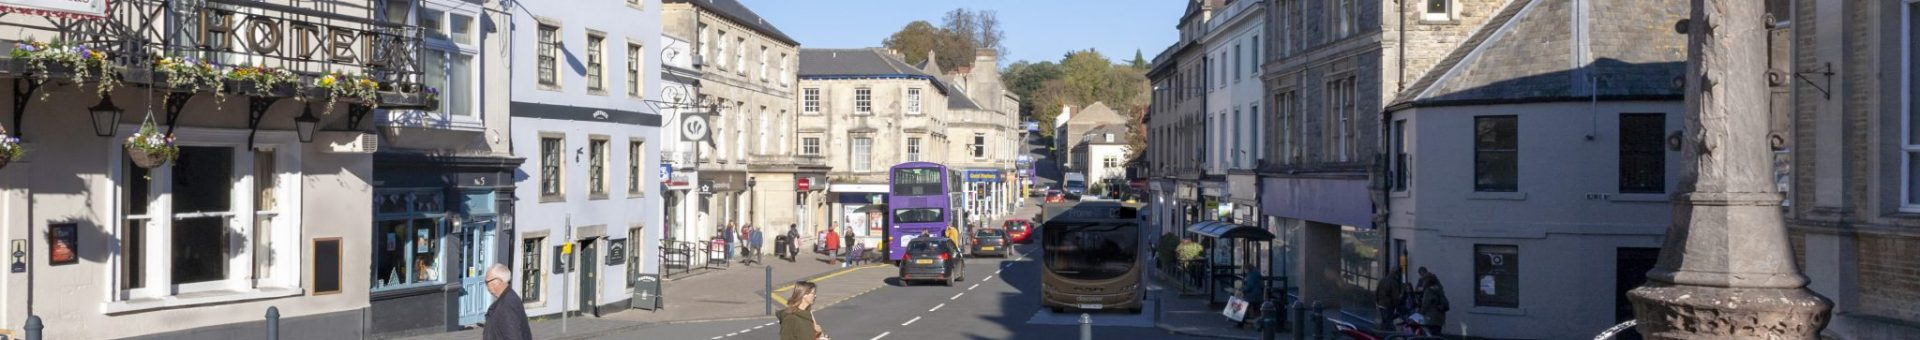 Photo of Market Place, Frome